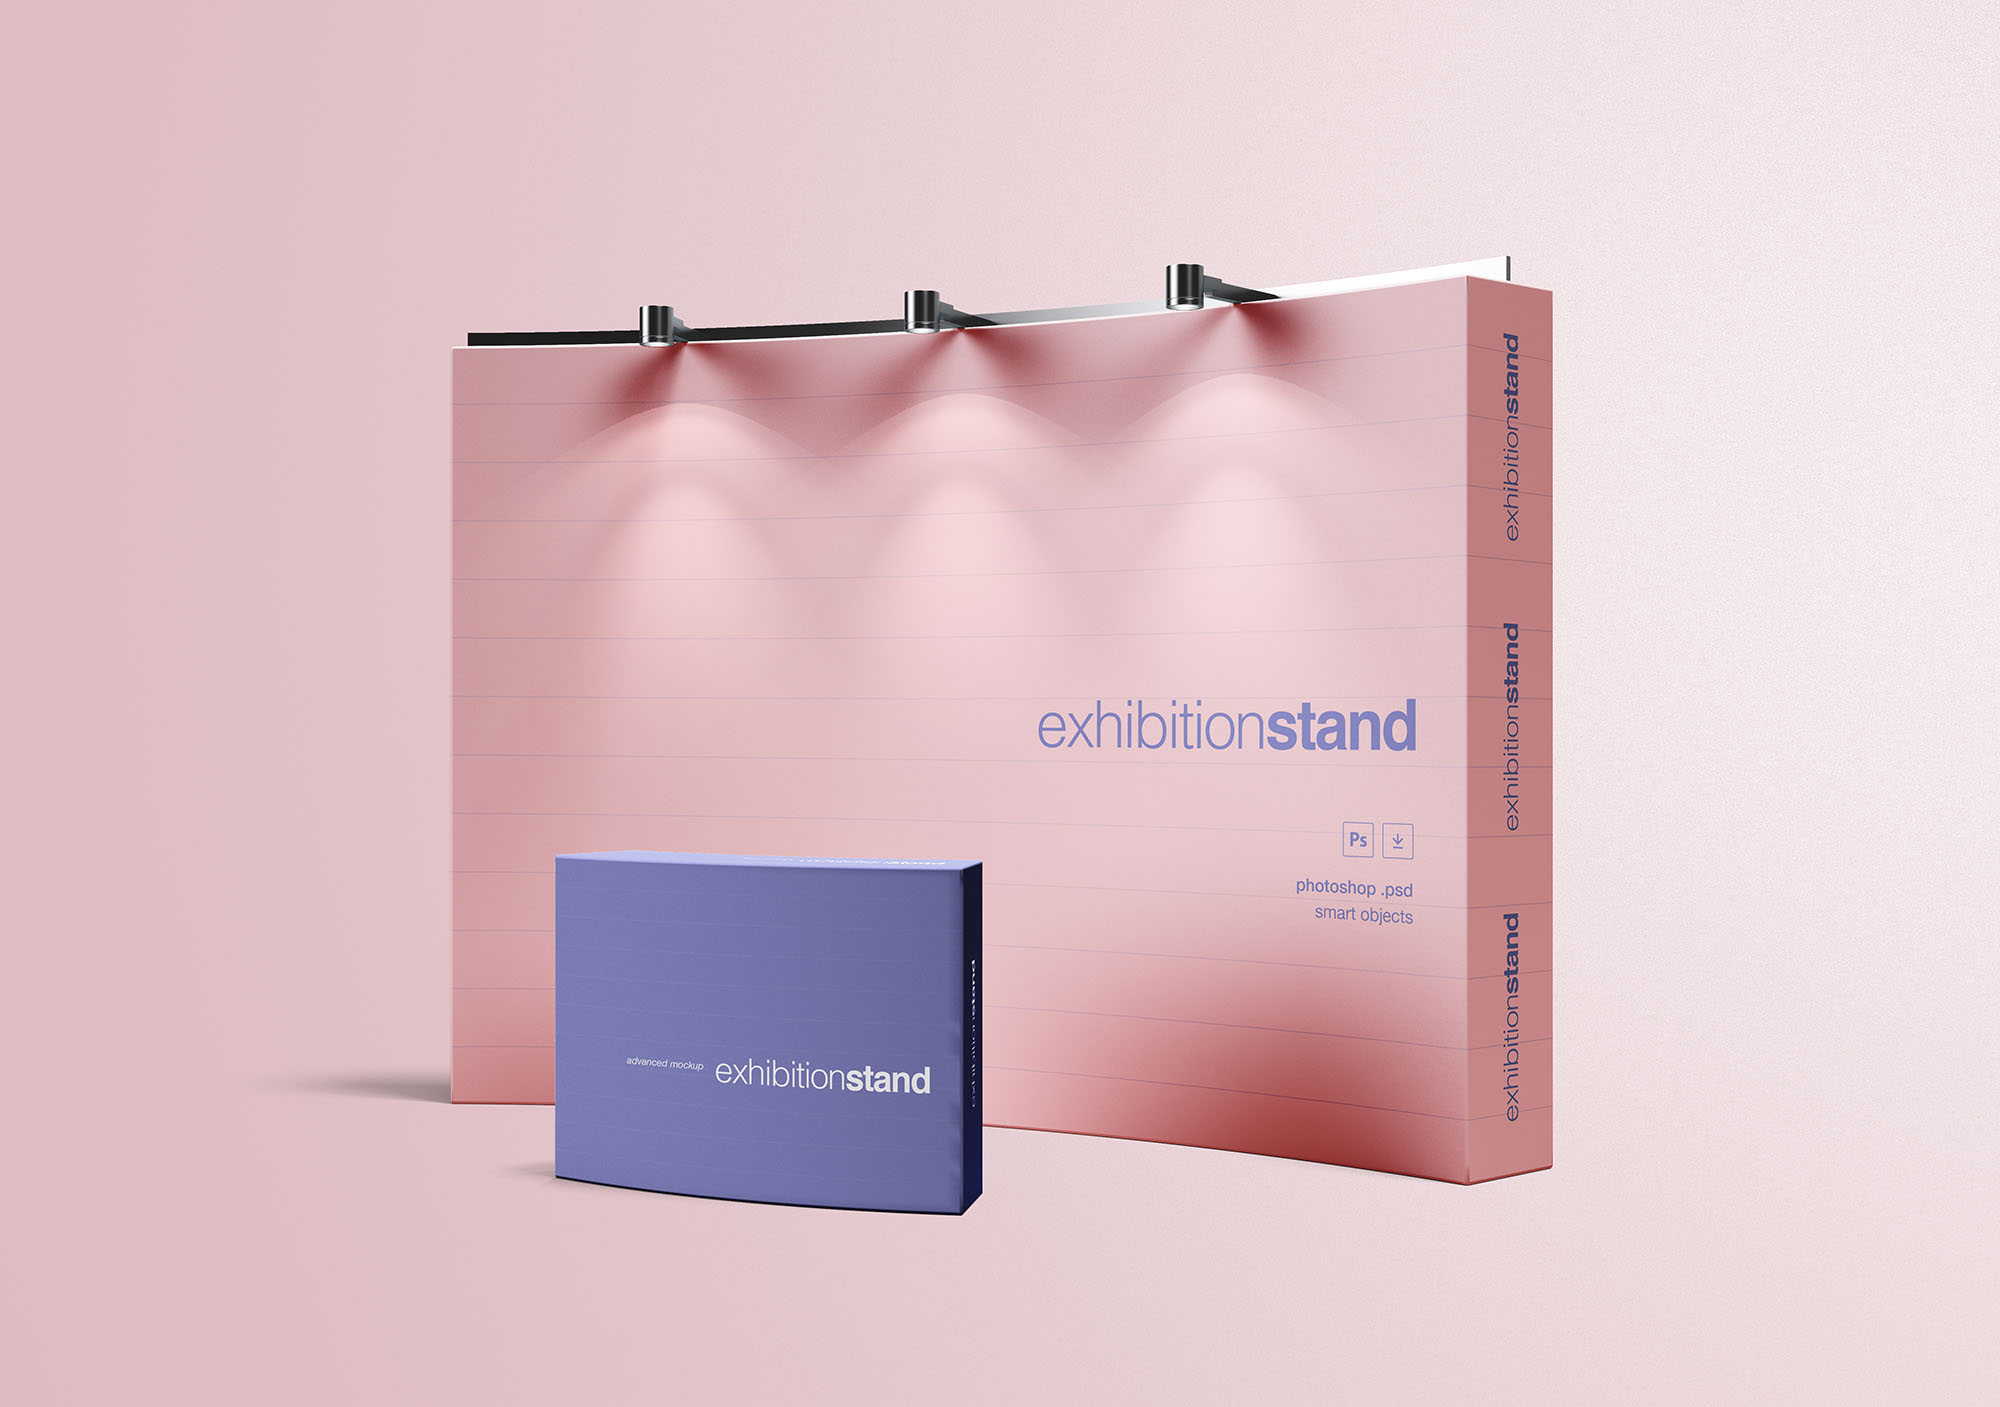 Simple Exhibition Stand : Simple exhibition stand mockup